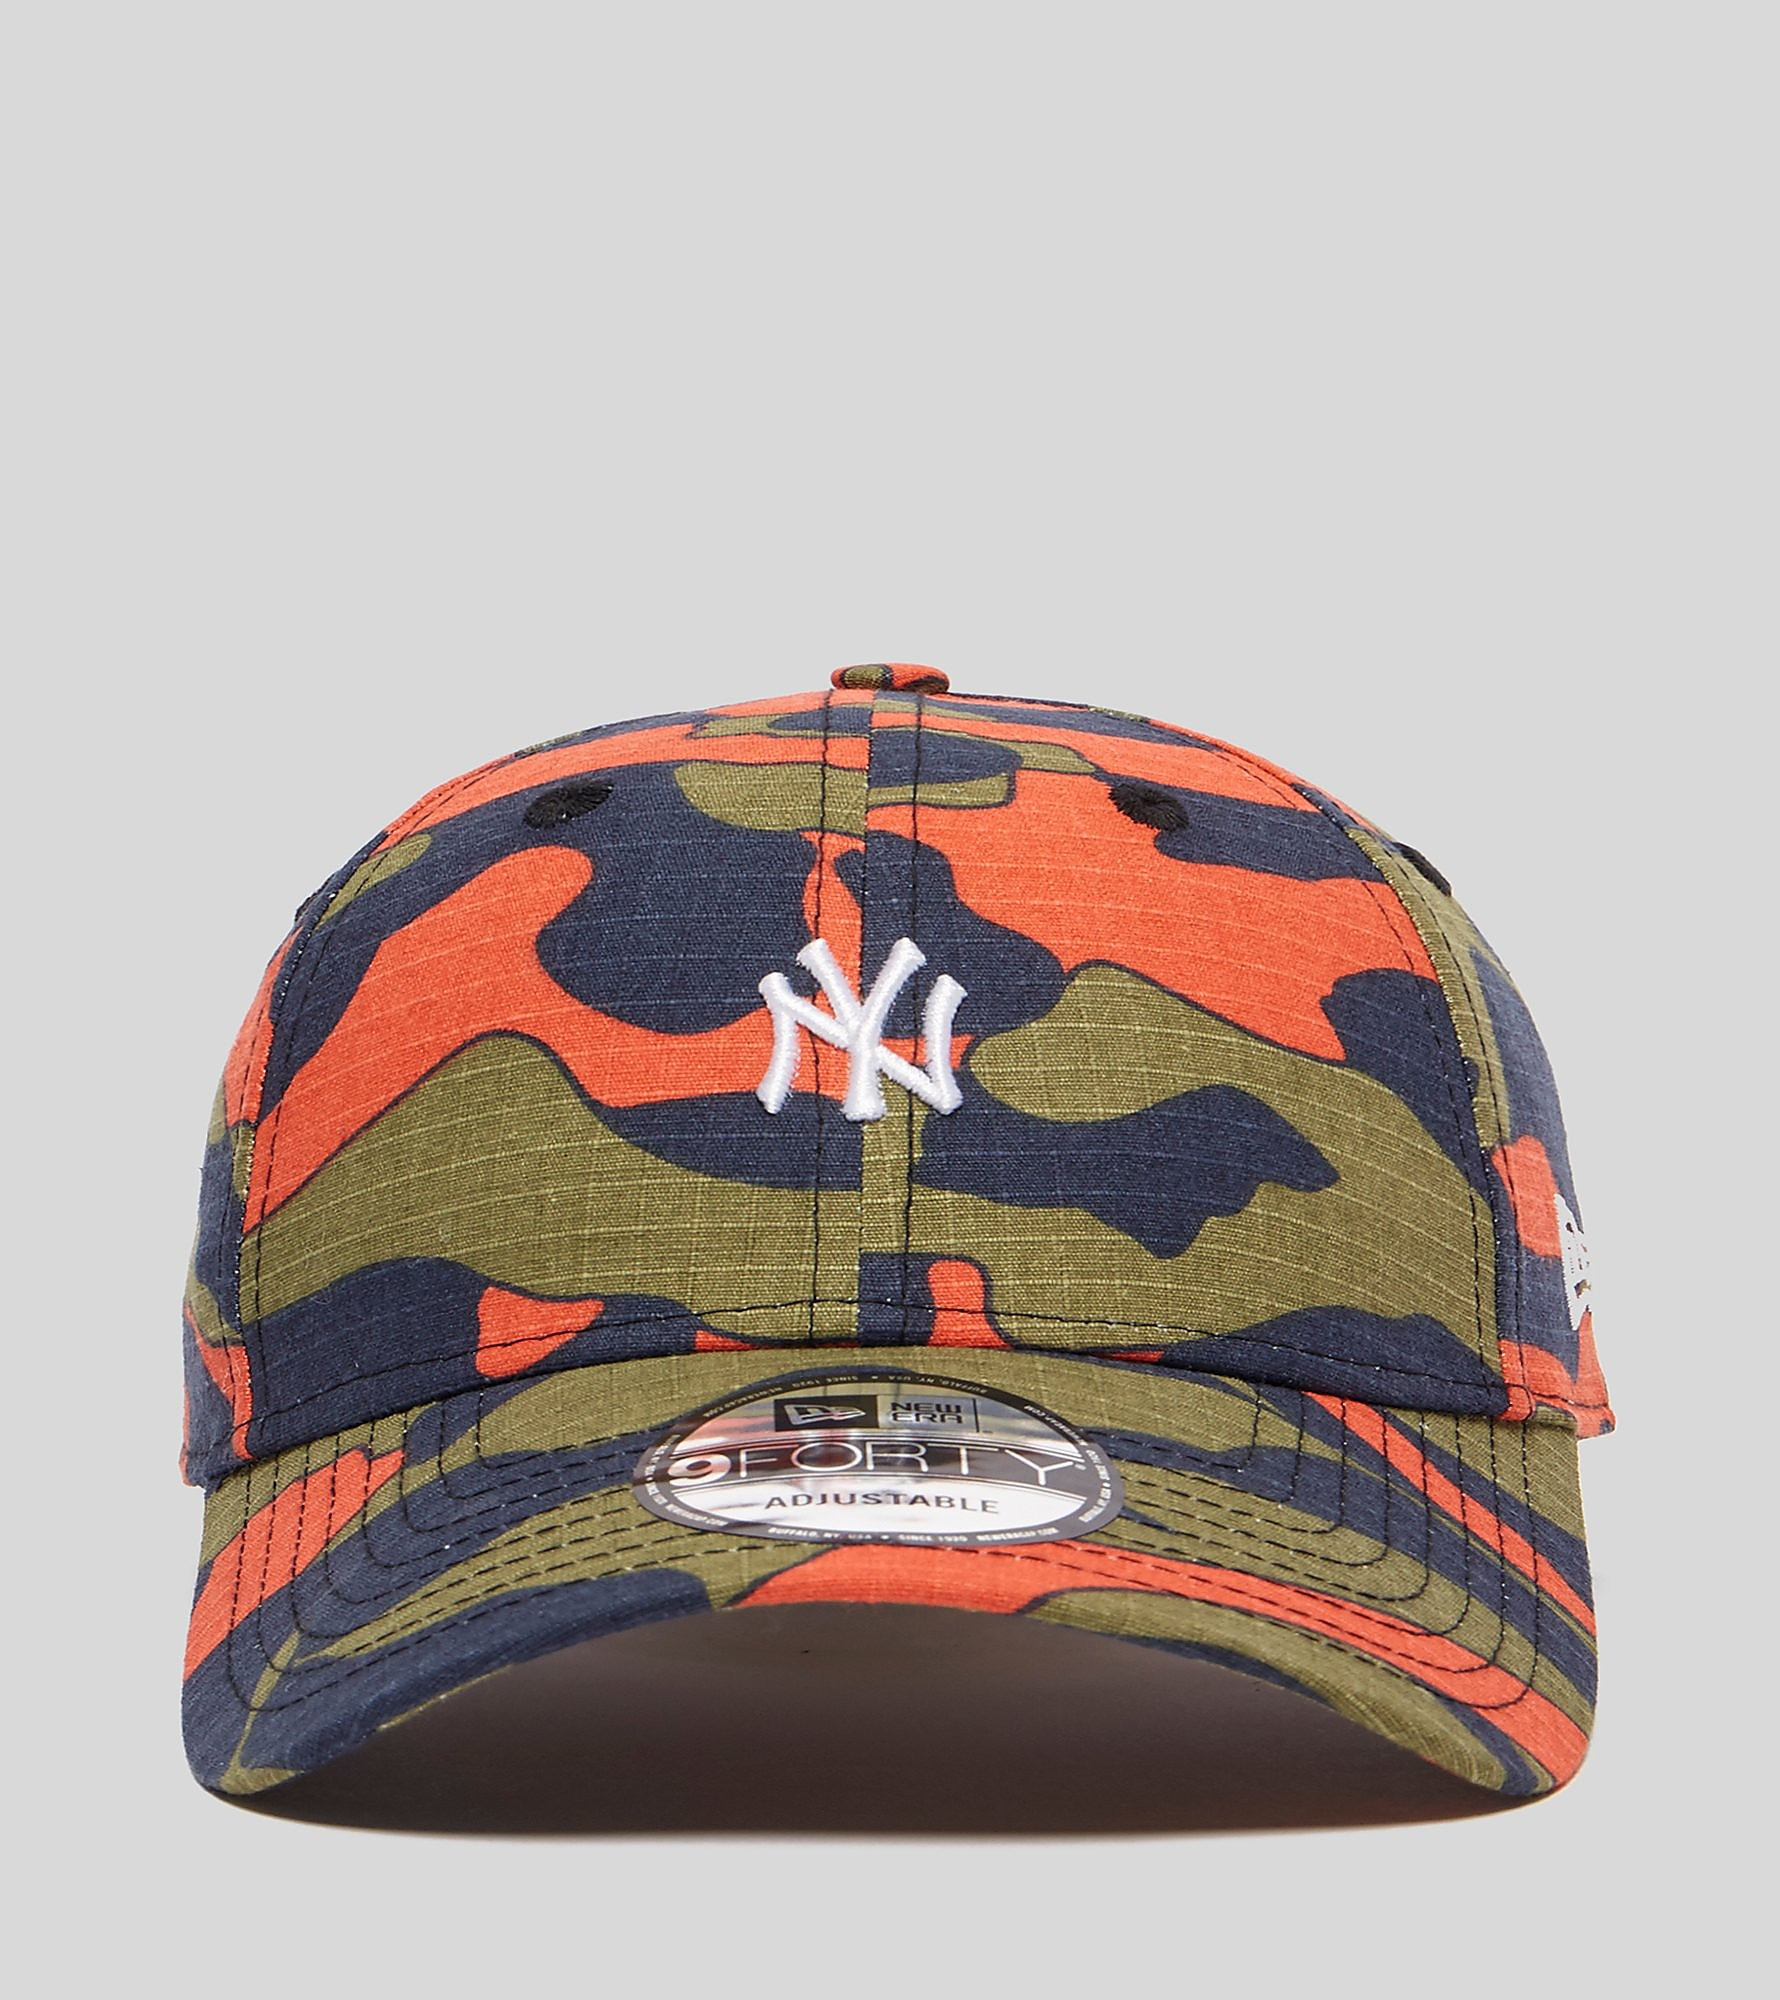 New Era 9FORTY New York Yankees Cap - size? Exclusive